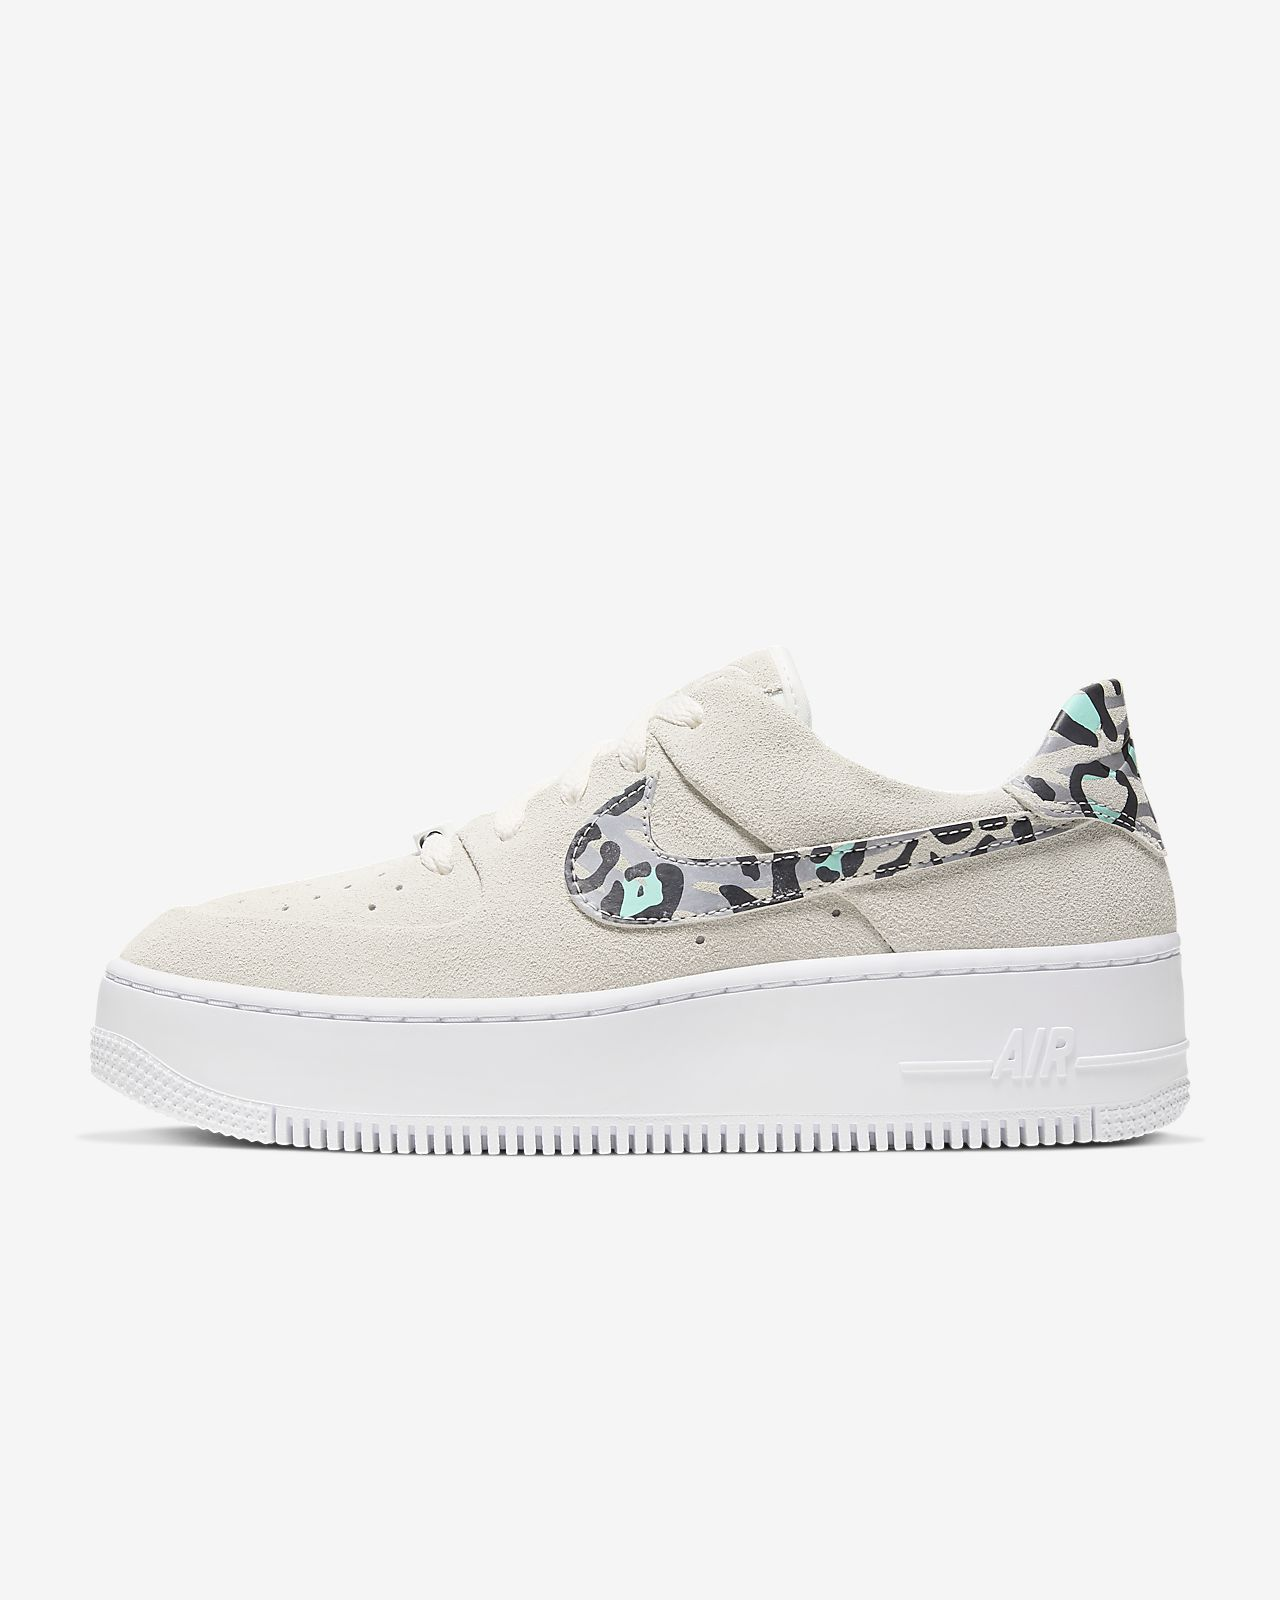 Nike Air Force 1 Sage Low Triple White For Sale